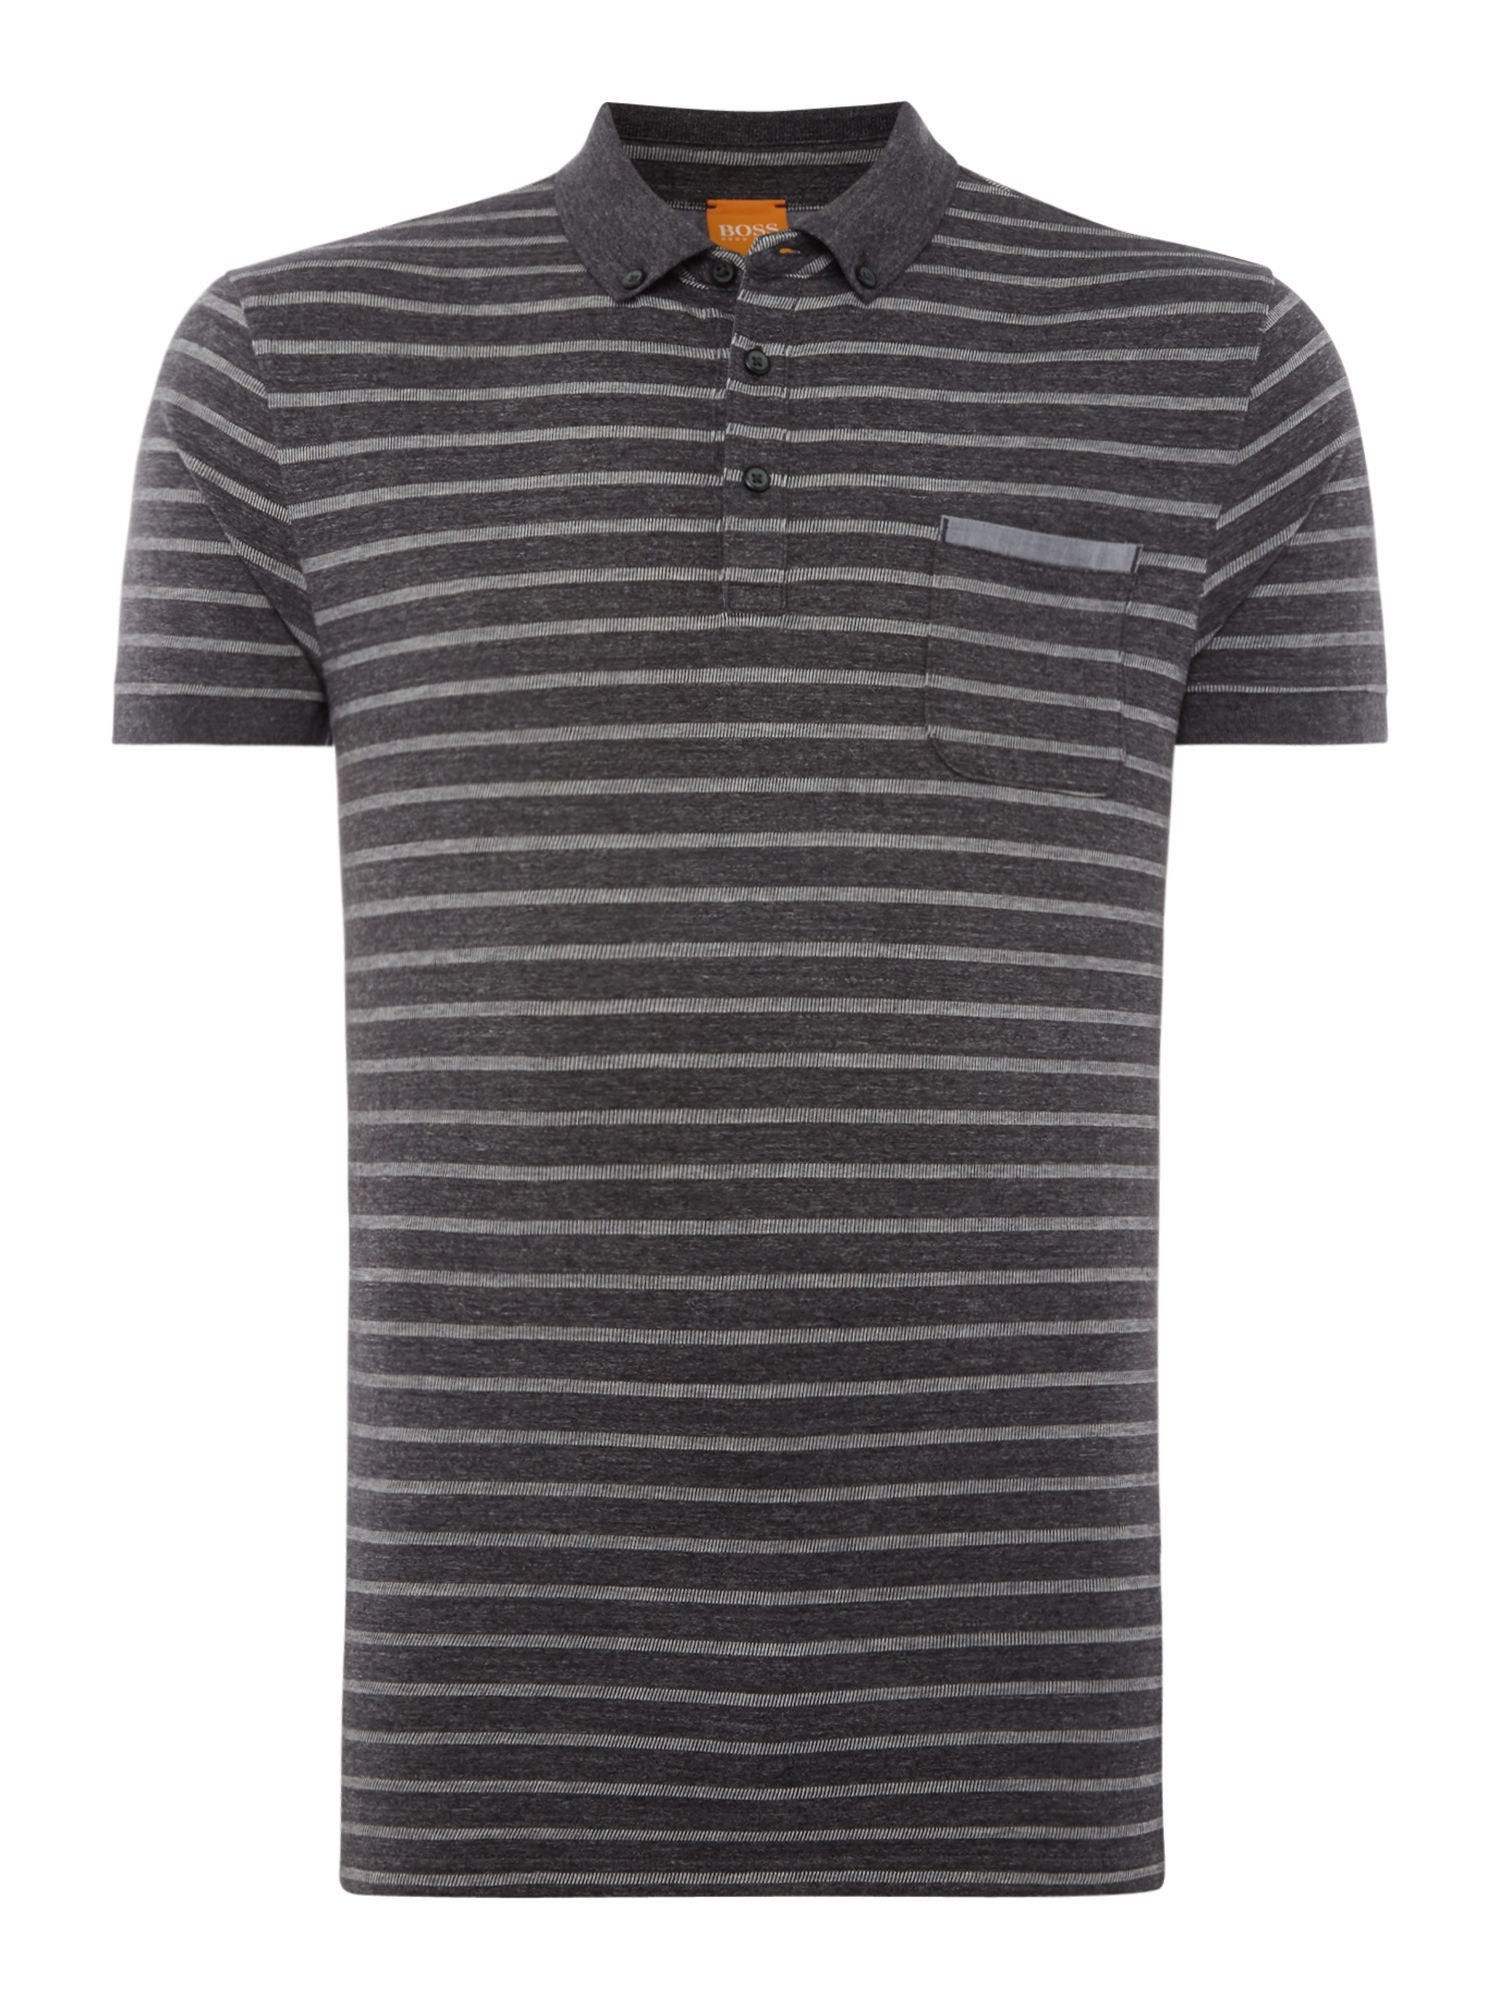 Men's Hugo Boss Powerful striped polo, Charcoal